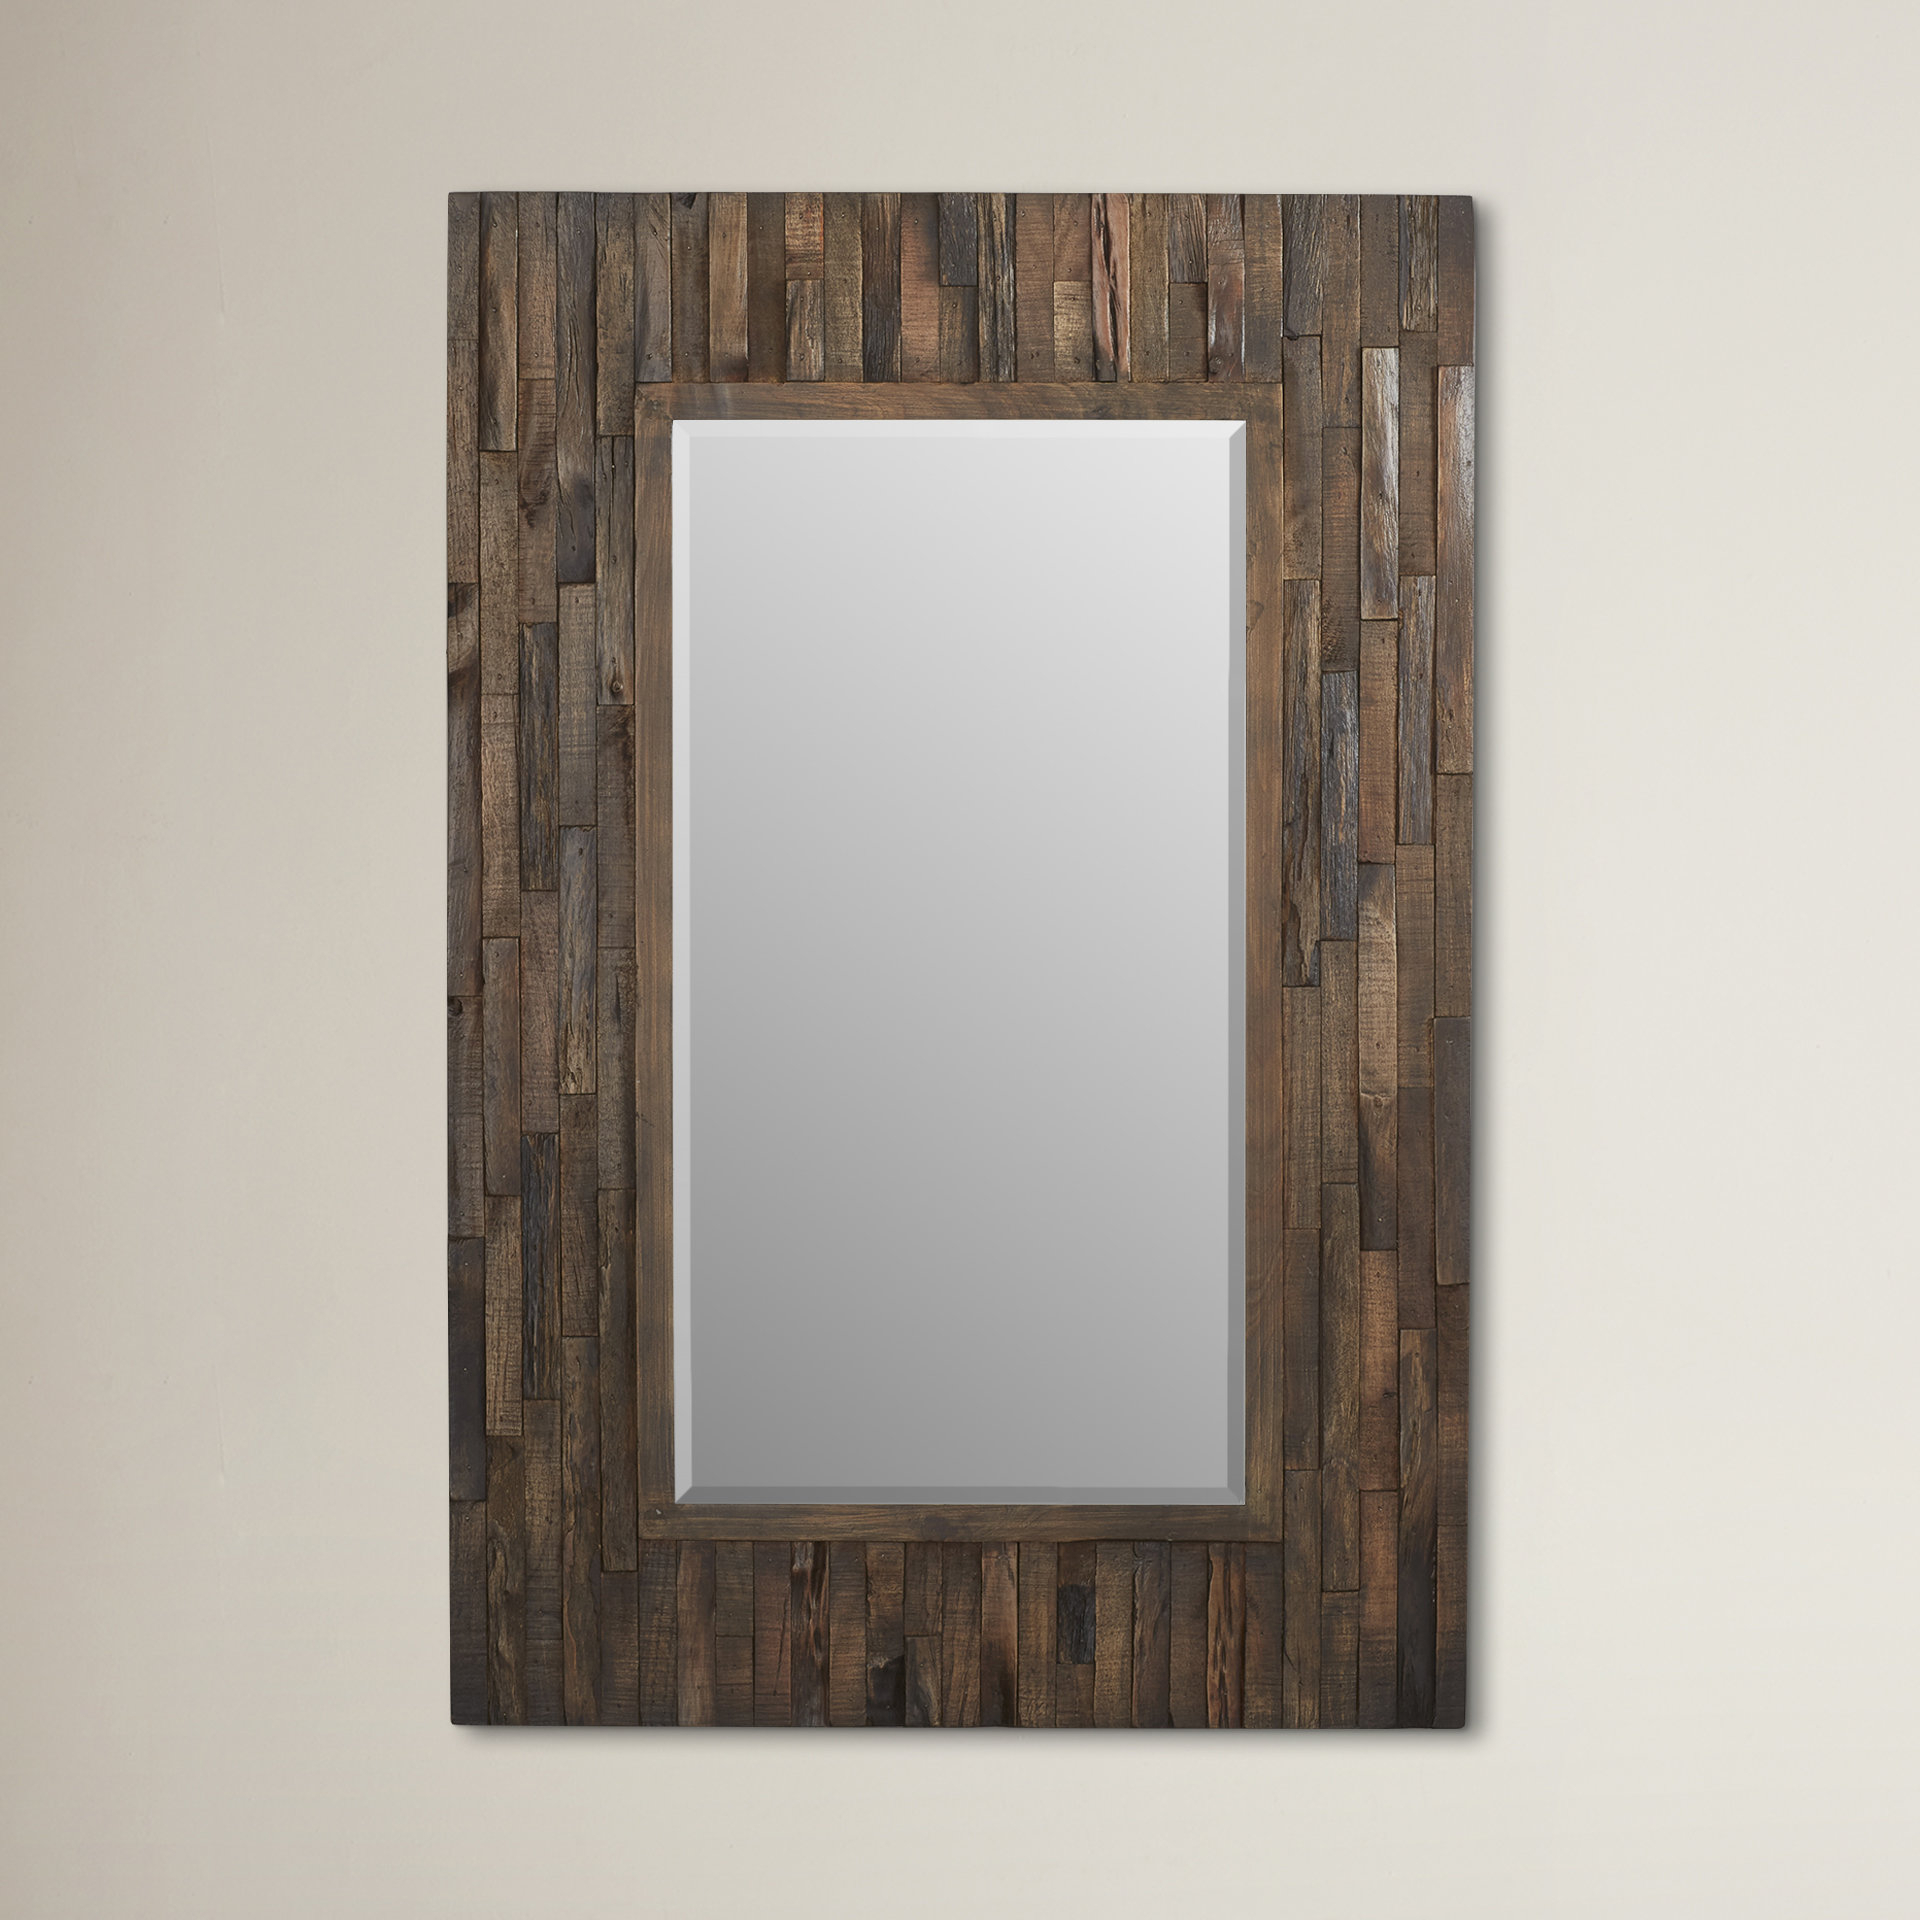 Farmhouse & Rustic Loon Peak Wall & Accent Mirrors | Birch Lane Throughout Cromartie Tree Branch Wall Mirrors (View 15 of 20)